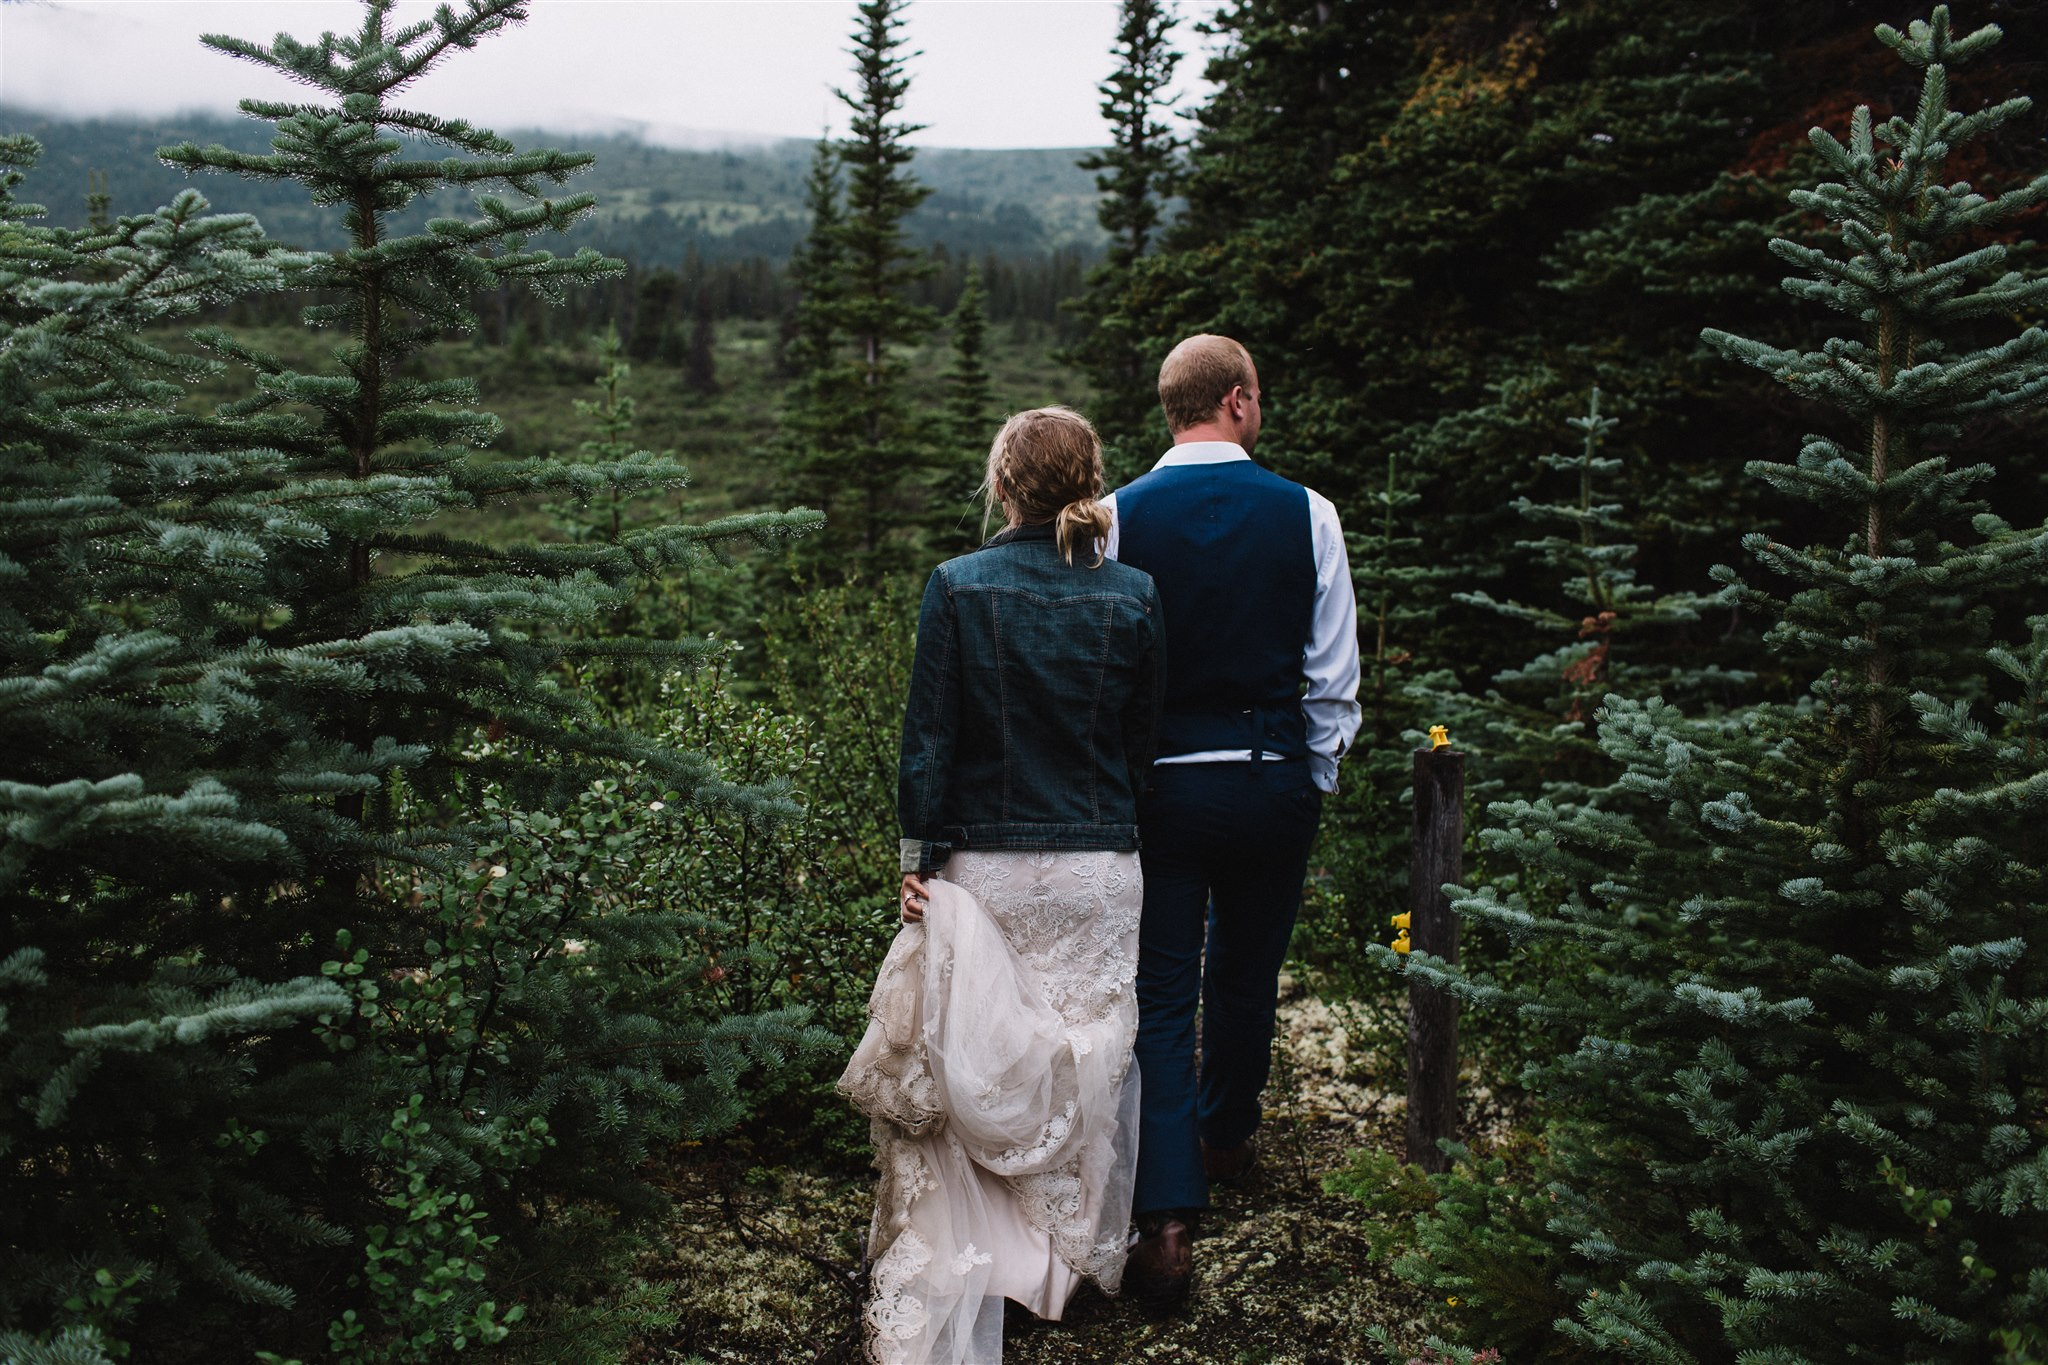 Bride and groom's adventure session by wedding photographer Tea & Oranges